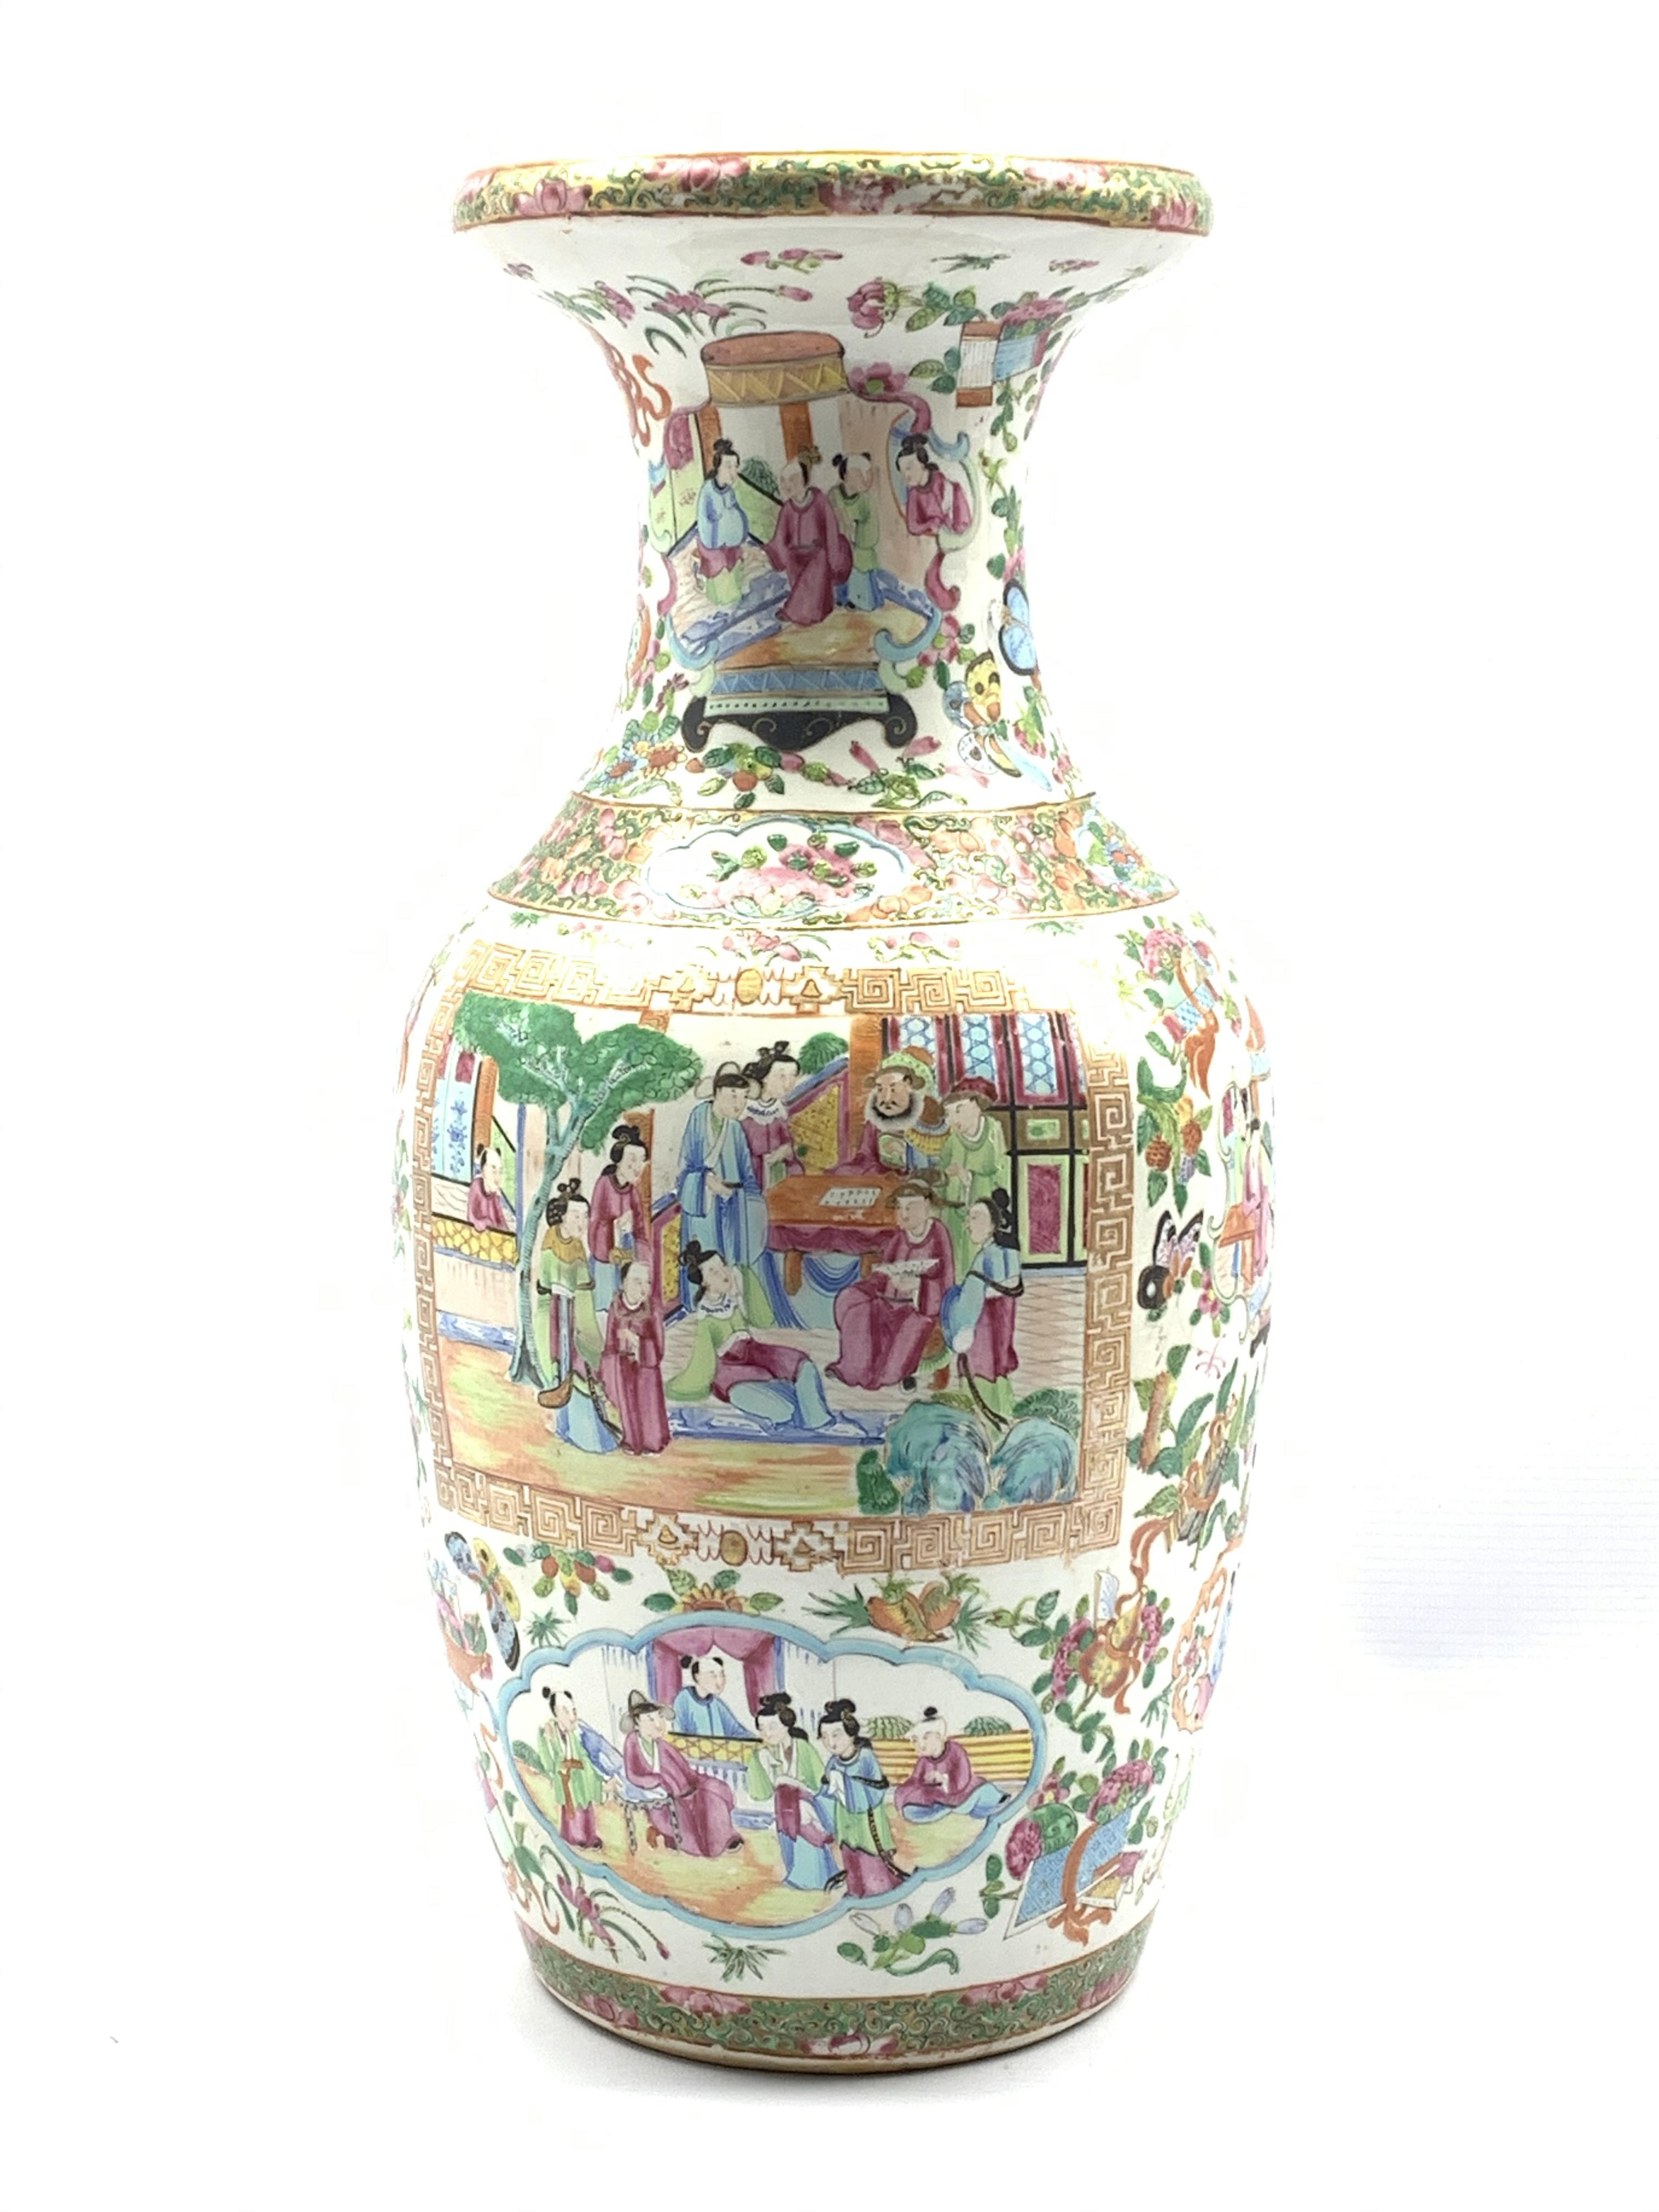 19th century Chinese Canton Famille Rose vase of baluster form, enamelled with rectangular panels